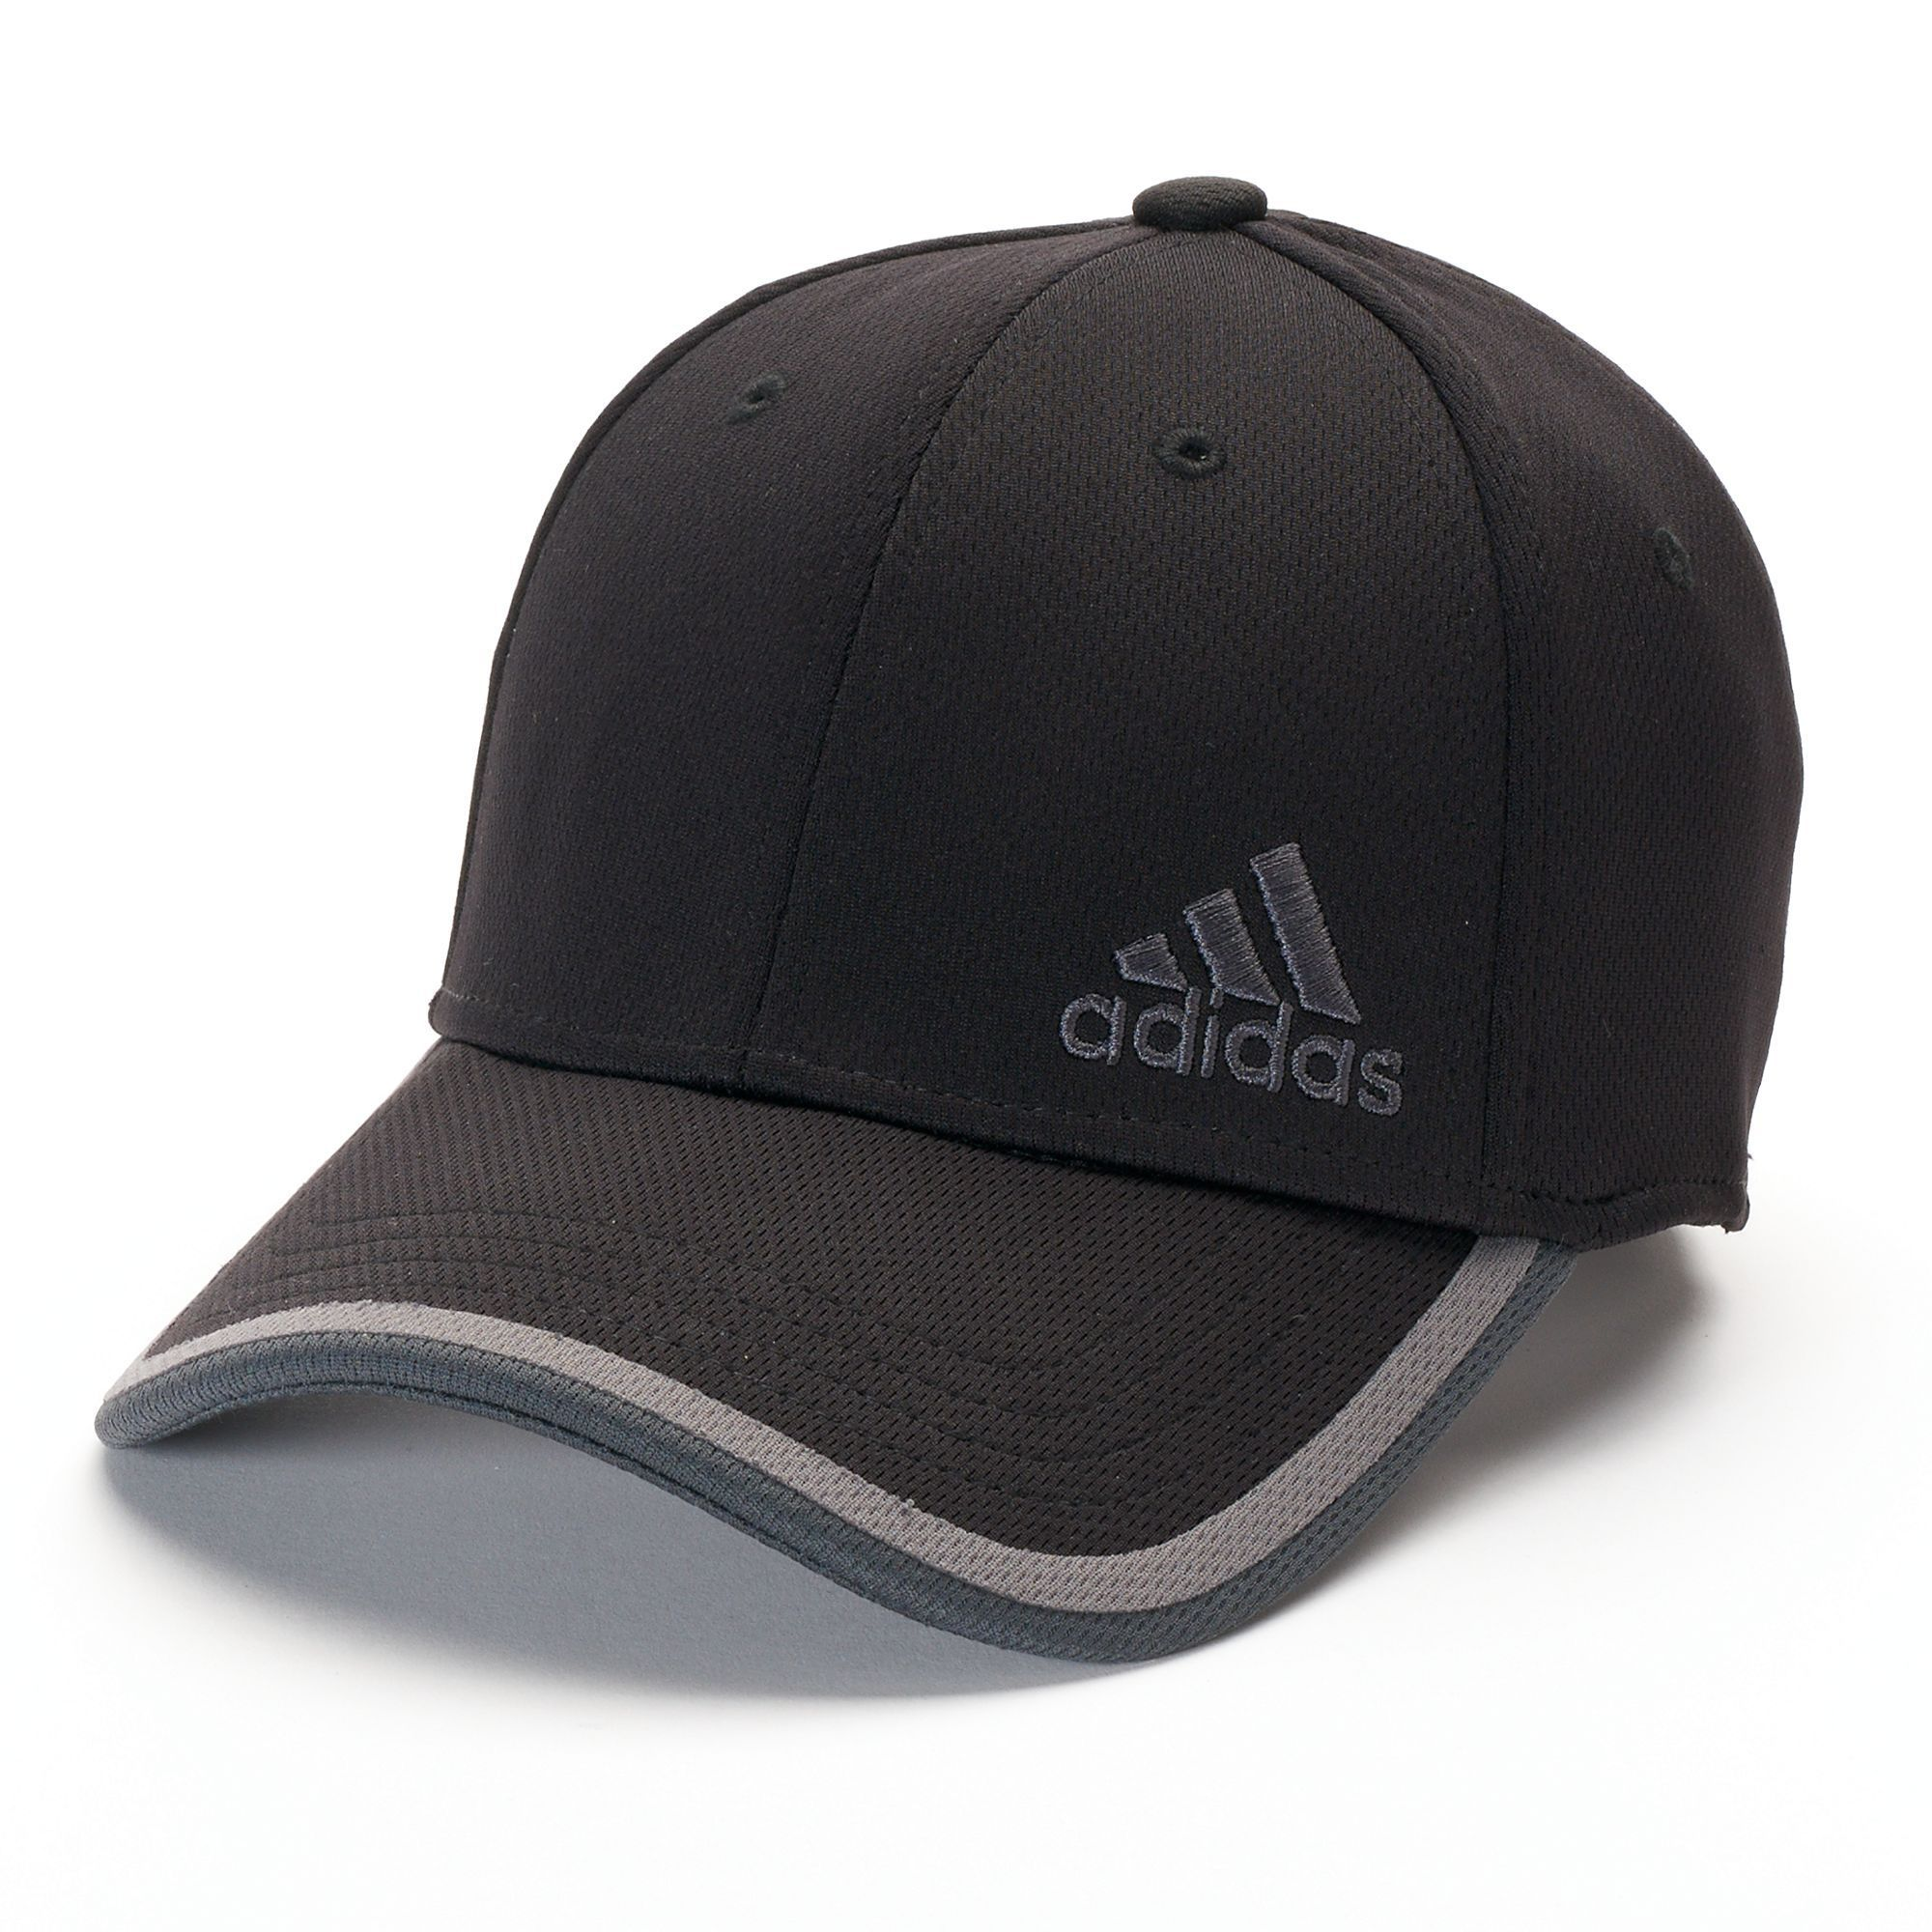 77d92b177 adidas Fitted Baseball Cap - Men in 2019 | Products | Mens caps ...